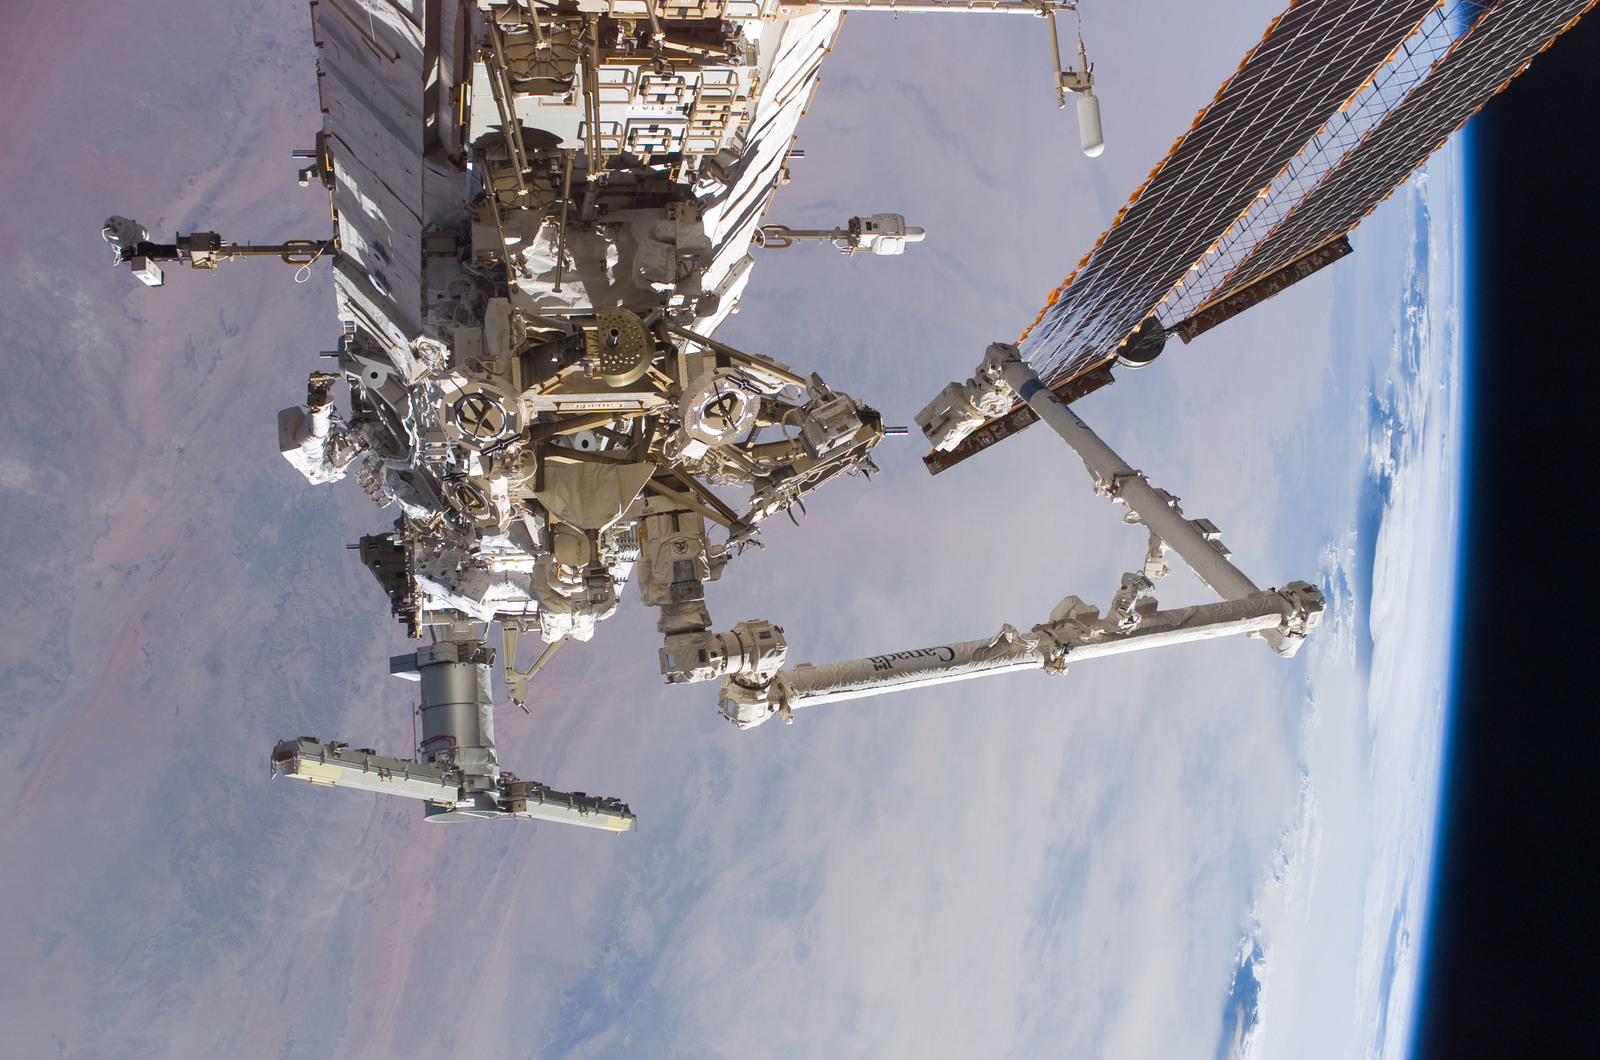 S115E05889 - STS-115 - Burbank and MacLean prepare the SARJ on the P3 - P4 Truss Segment during STS-115 EVA